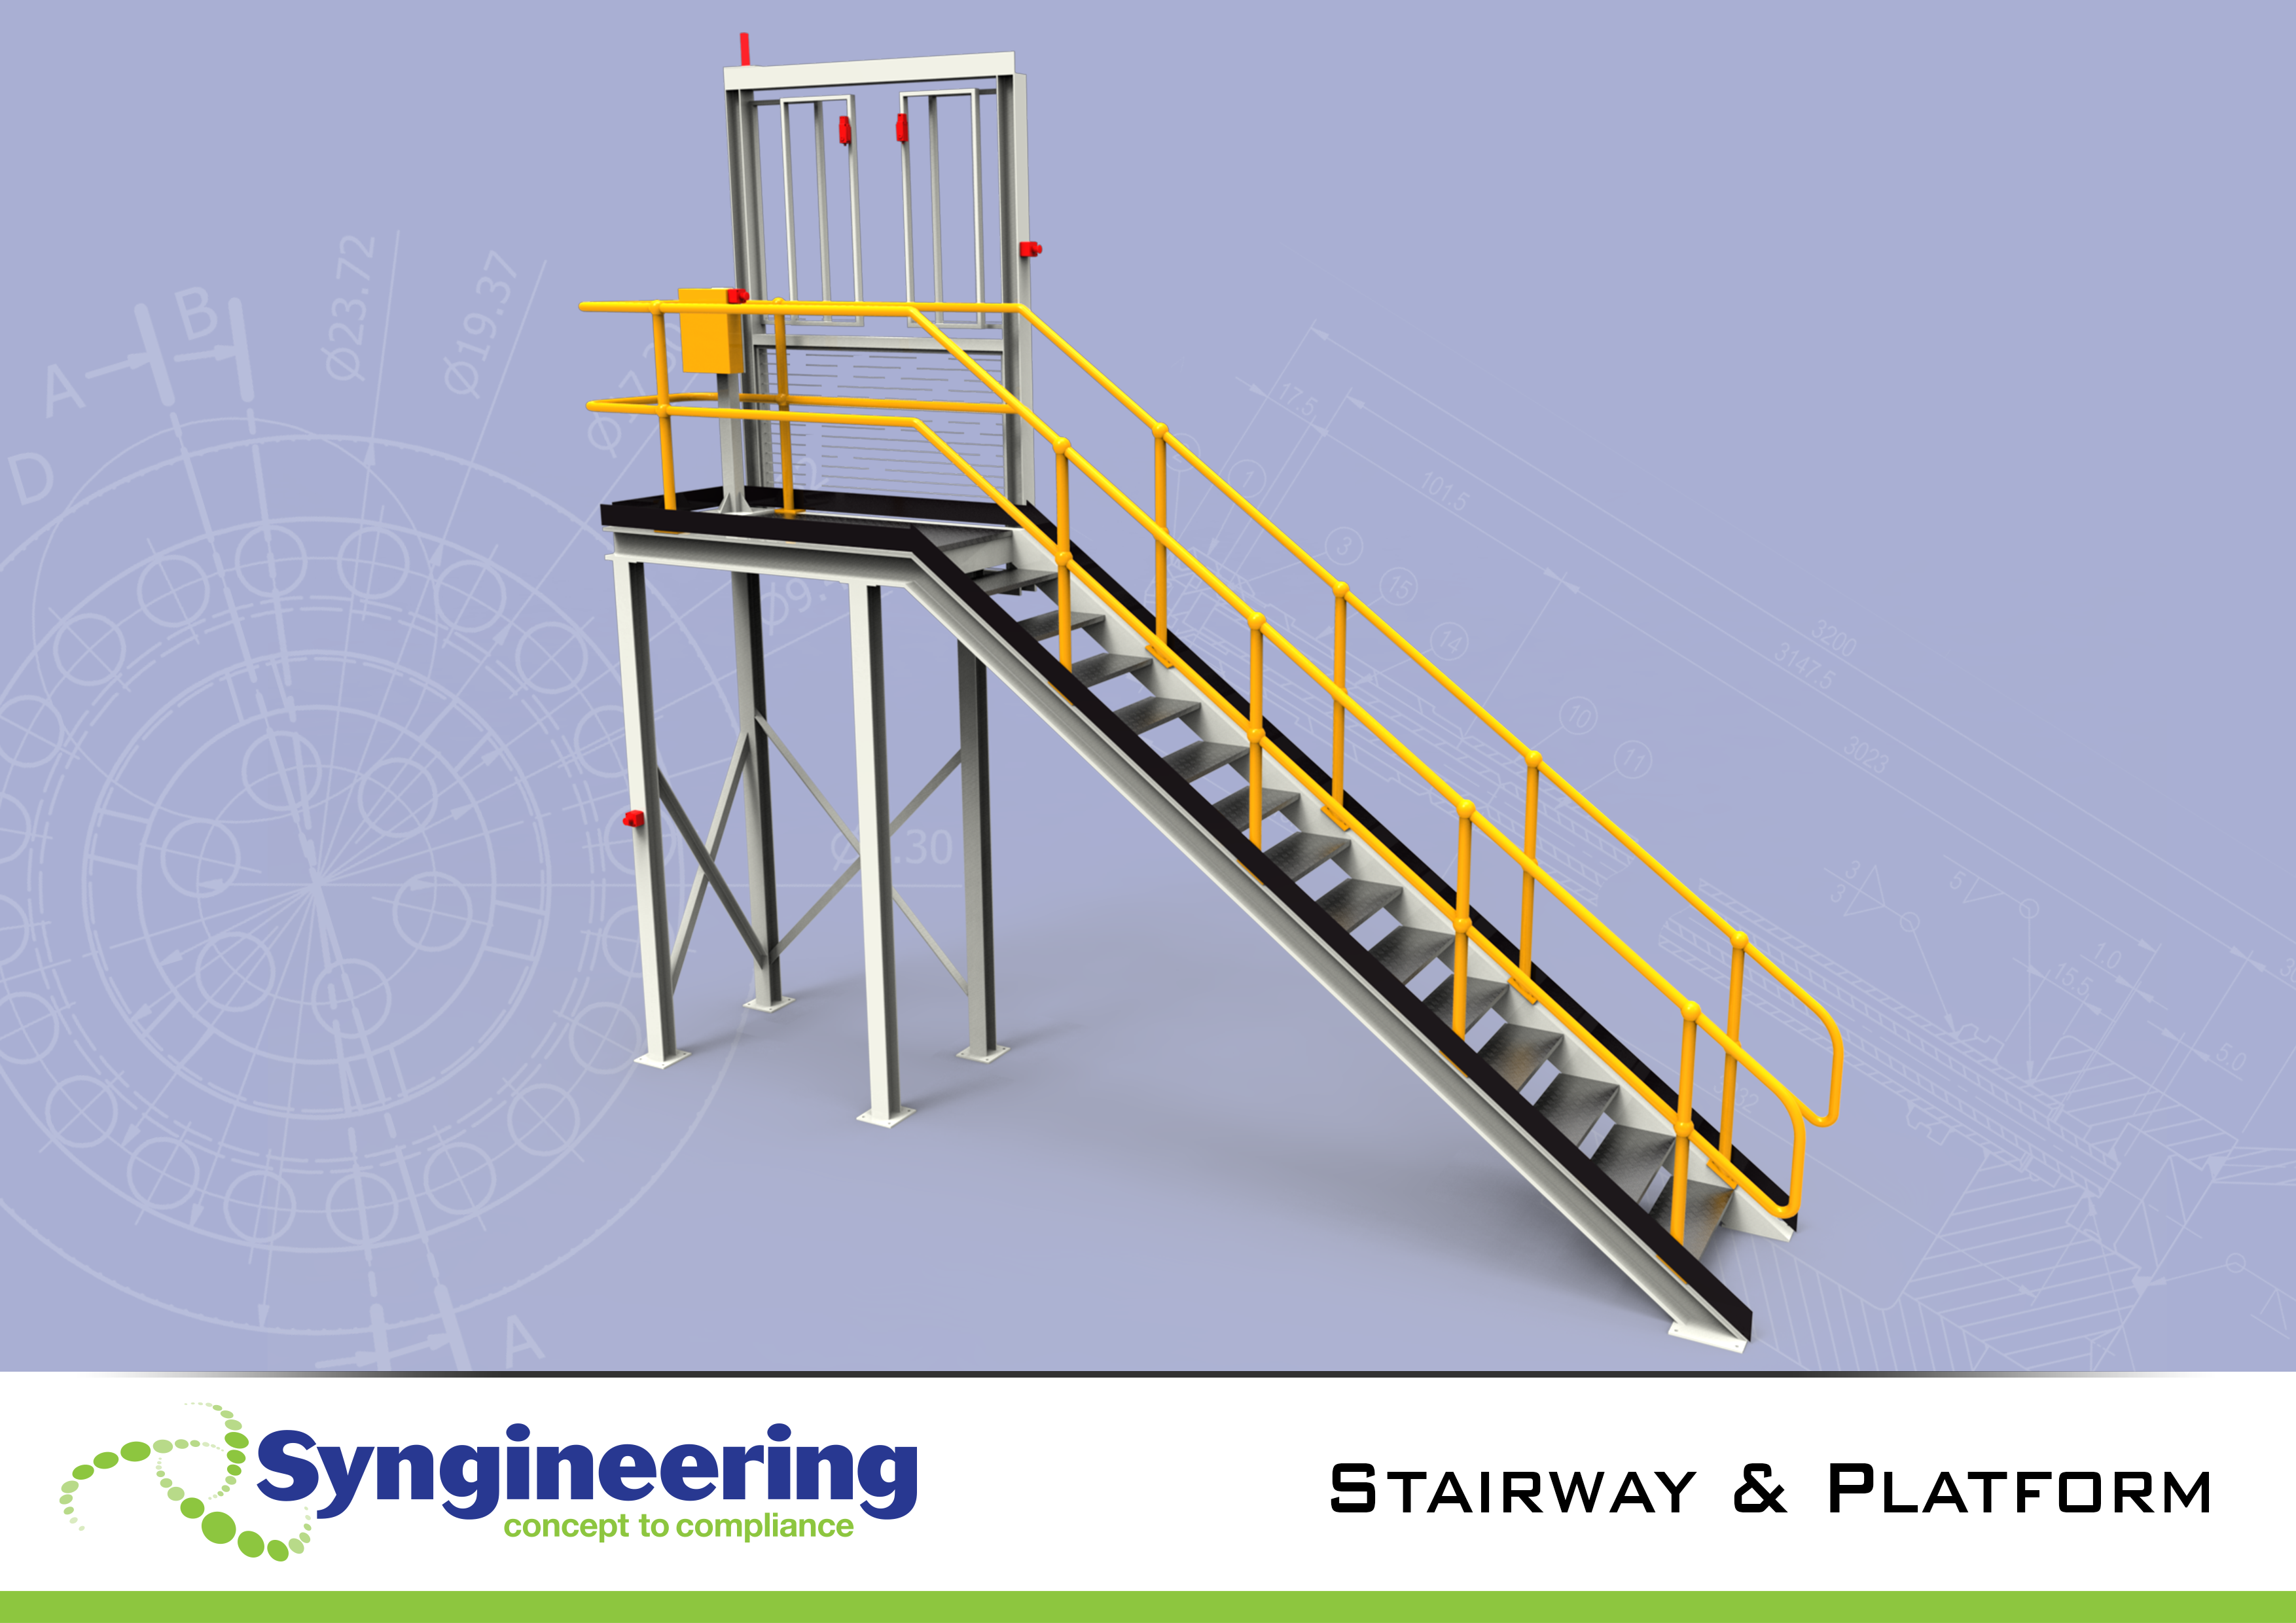 Syngineering Designs And Certifies Stairs To As1657